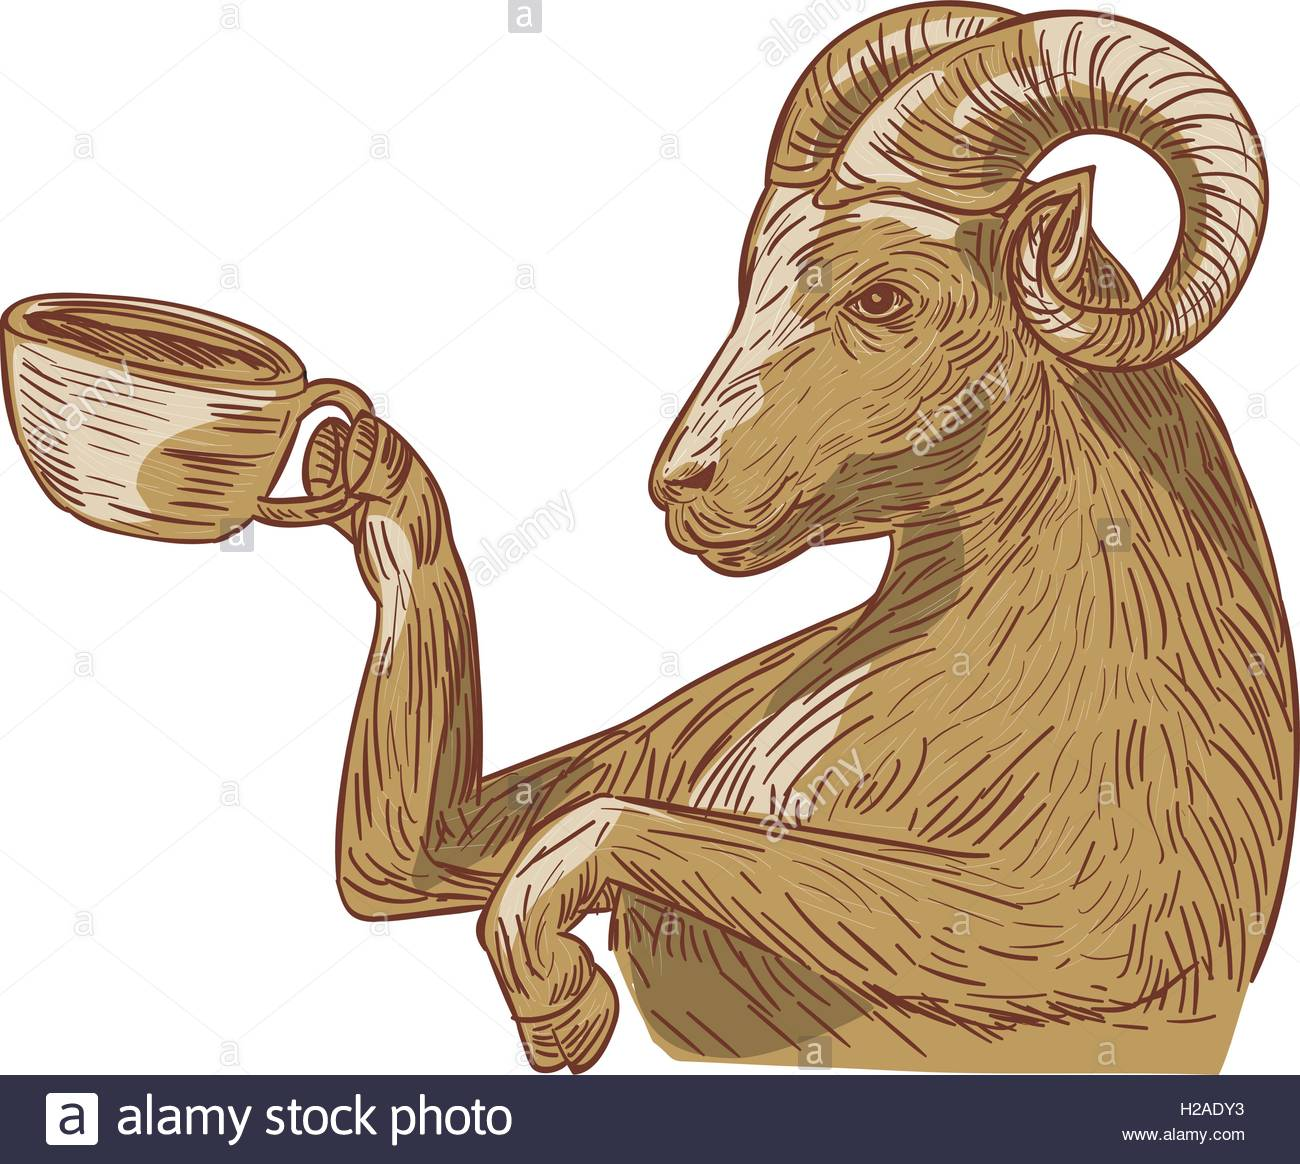 1300x1164 Ram Goat Drinking Coffee Drawing Stock Vector Art Amp Illustration